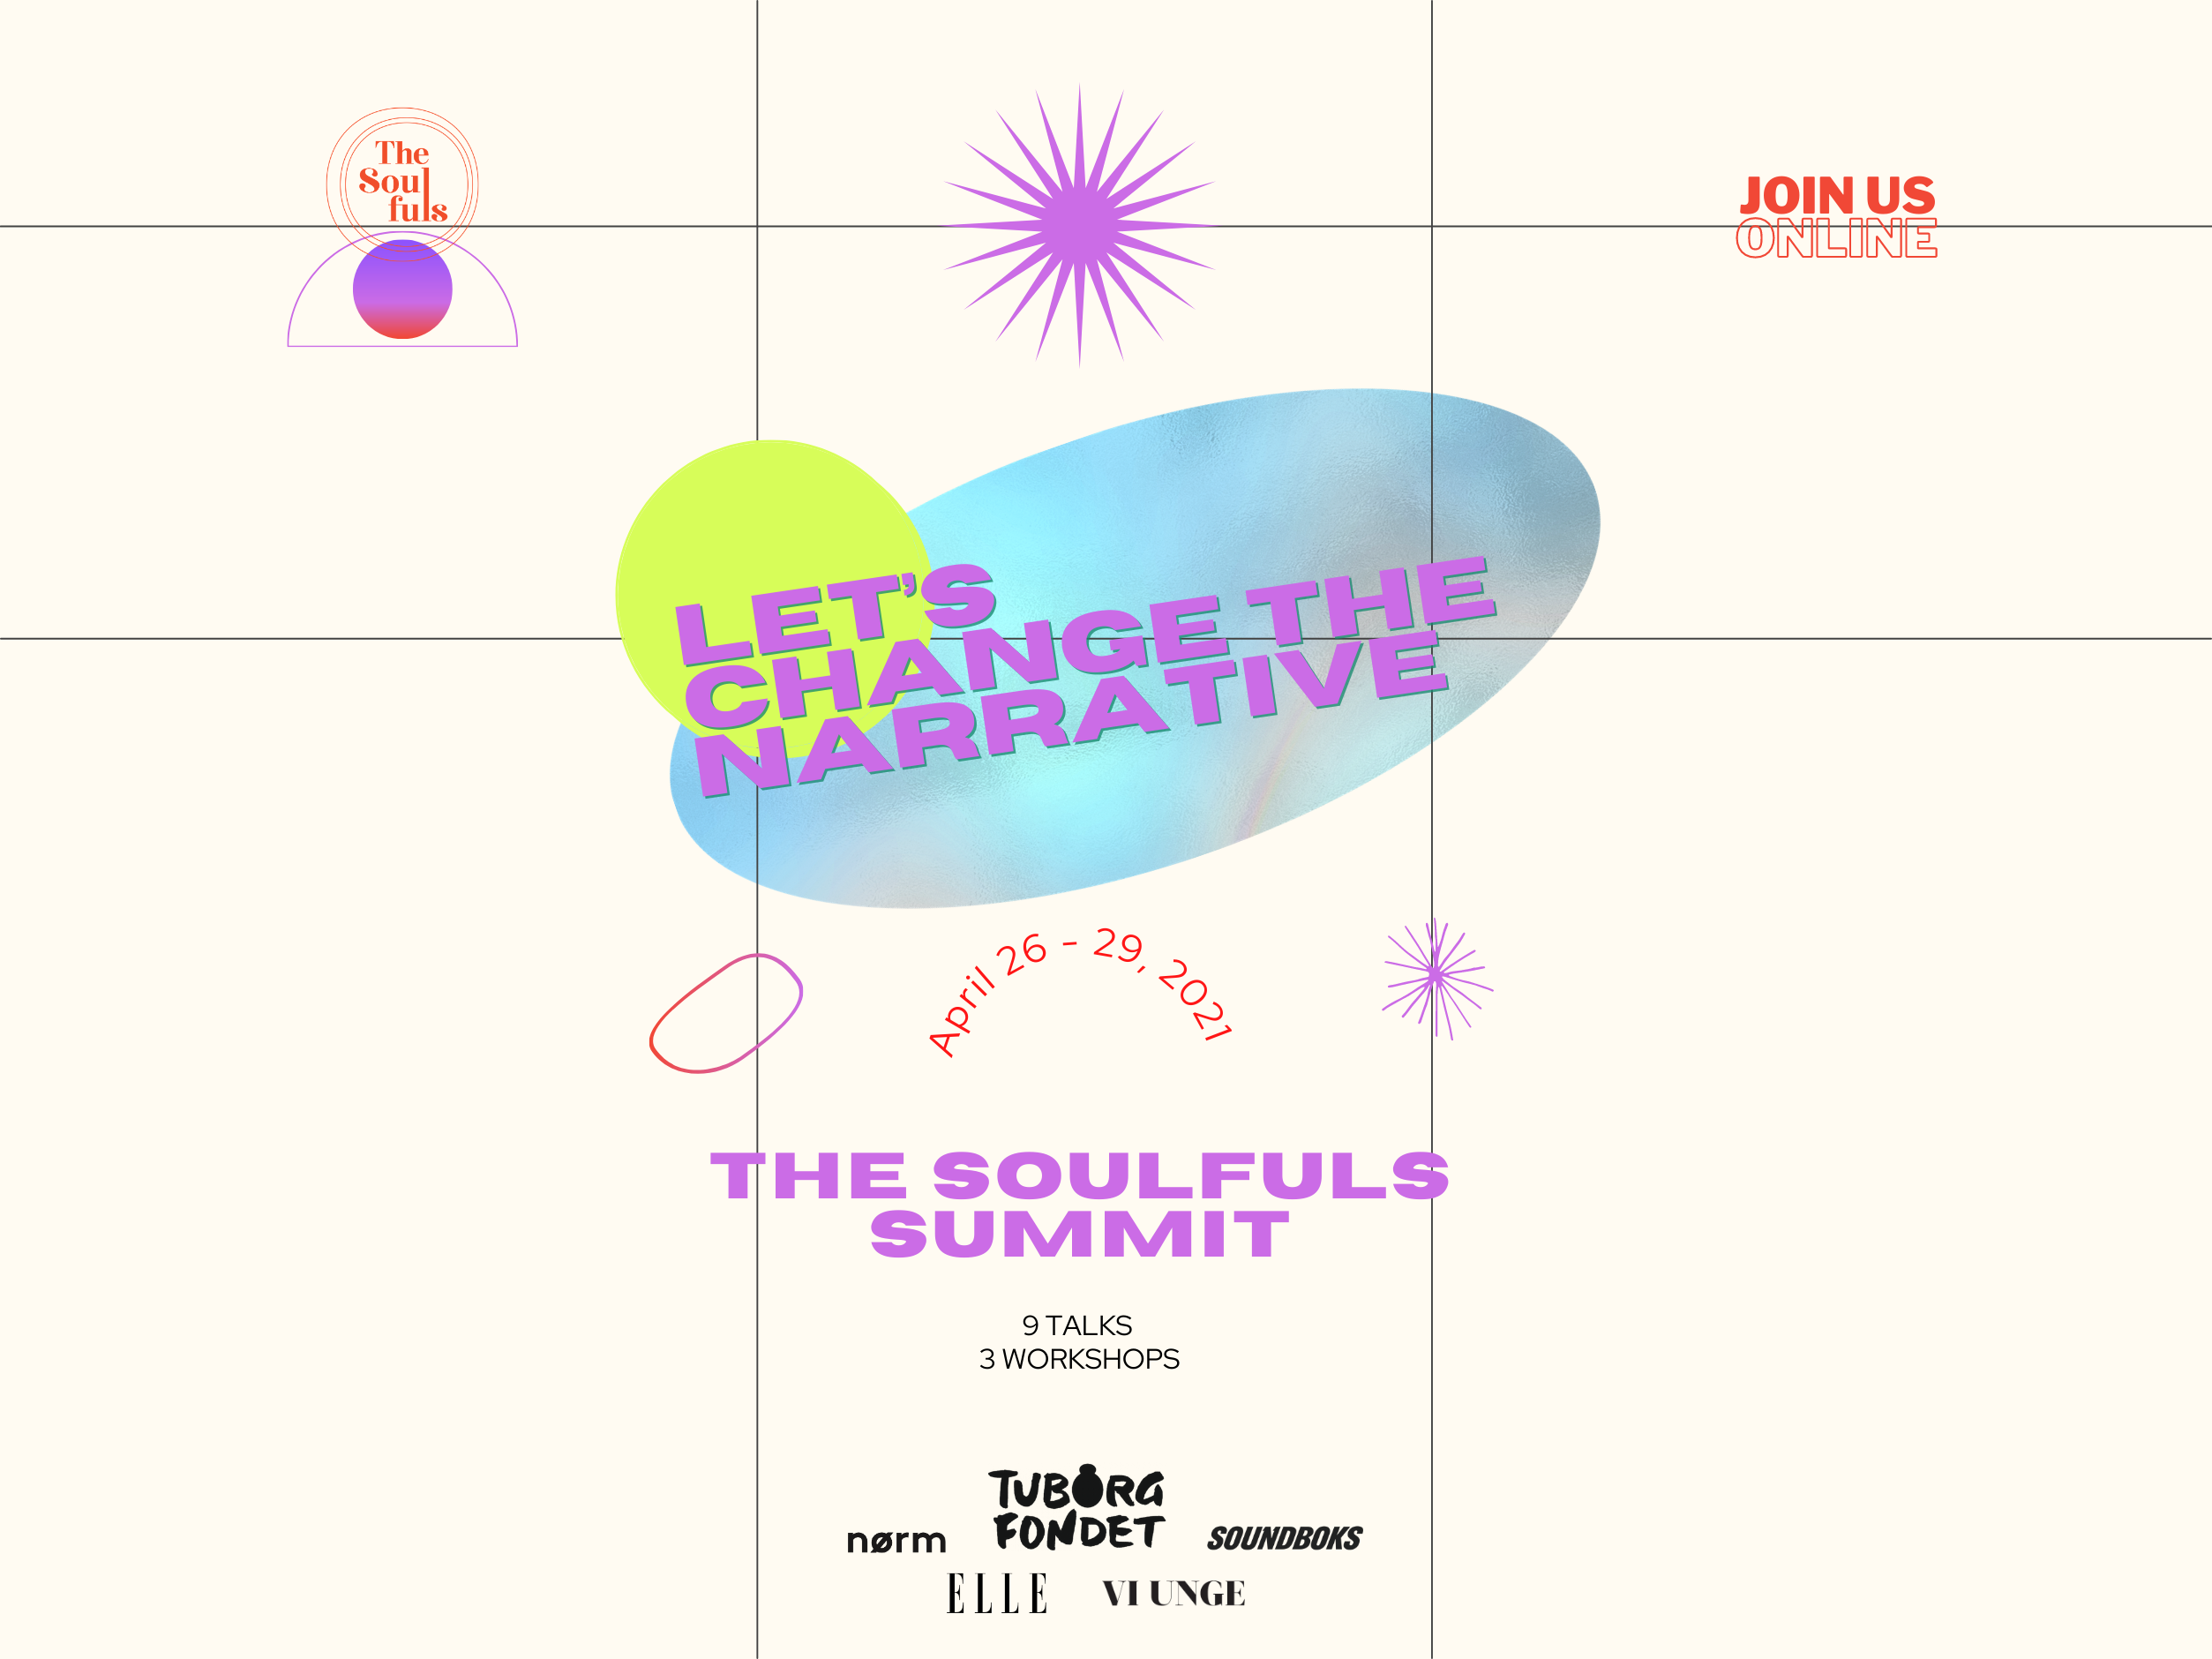 We like to get involved in causes close to our hearts and to in some small way try to make an impact on the world in a positive way. As such, we are always on the lookout for partners who share in our mission and we were very excited when we recently came across The Soulfuls.